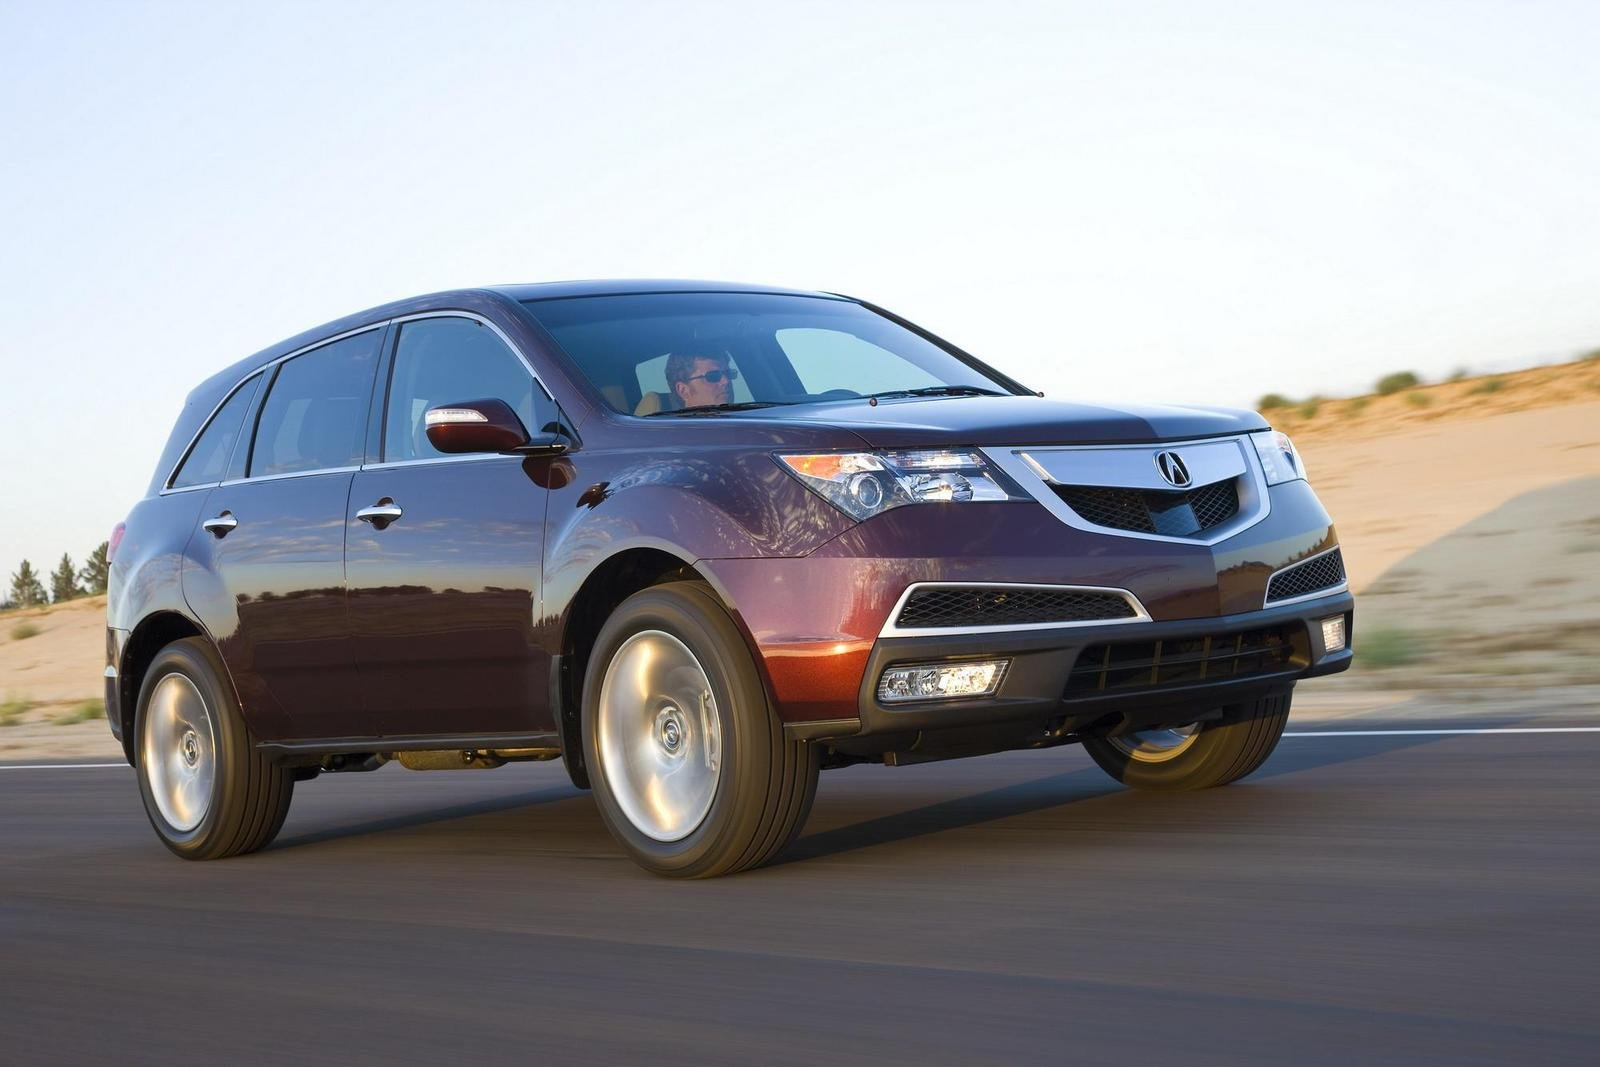 2010 acura mdx picture 323022 car review top speed. Black Bedroom Furniture Sets. Home Design Ideas